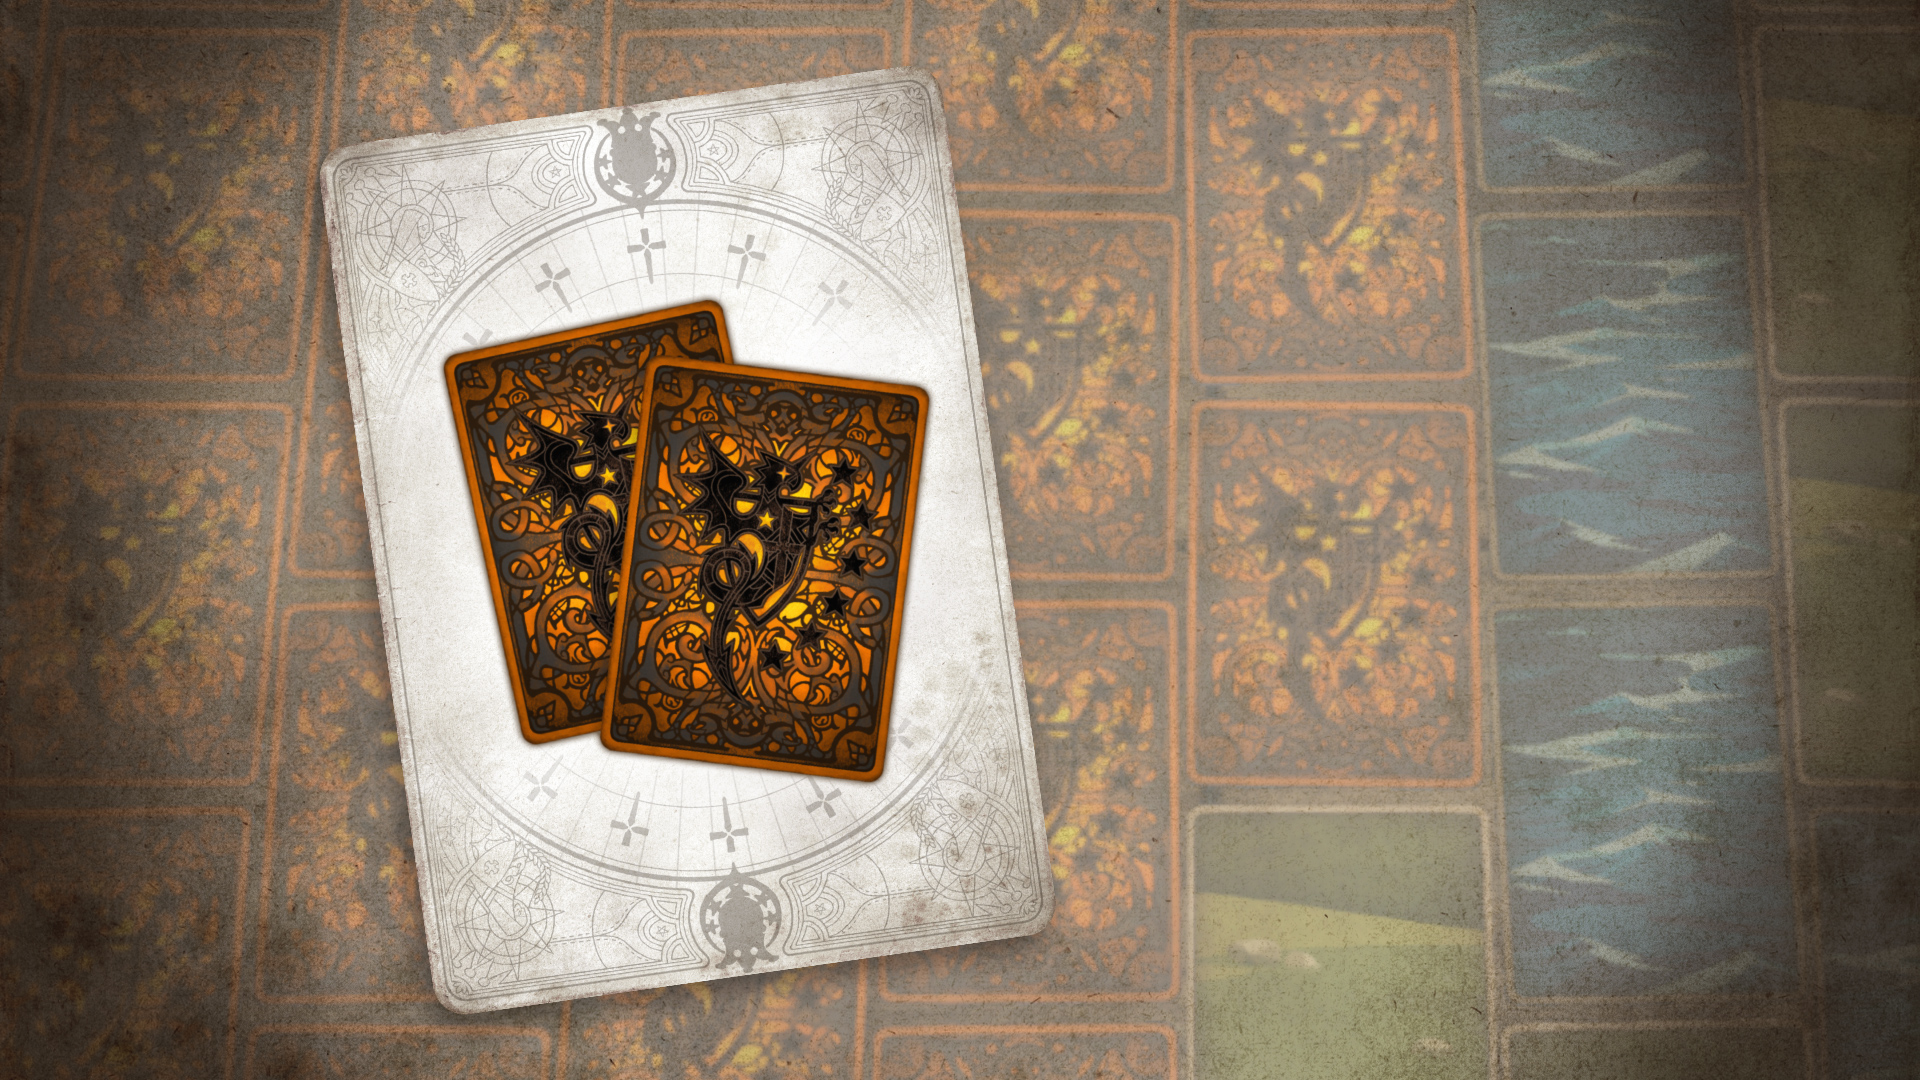 Voice of Cards: The Isle Dragon Roars Golden Dragon Pattern